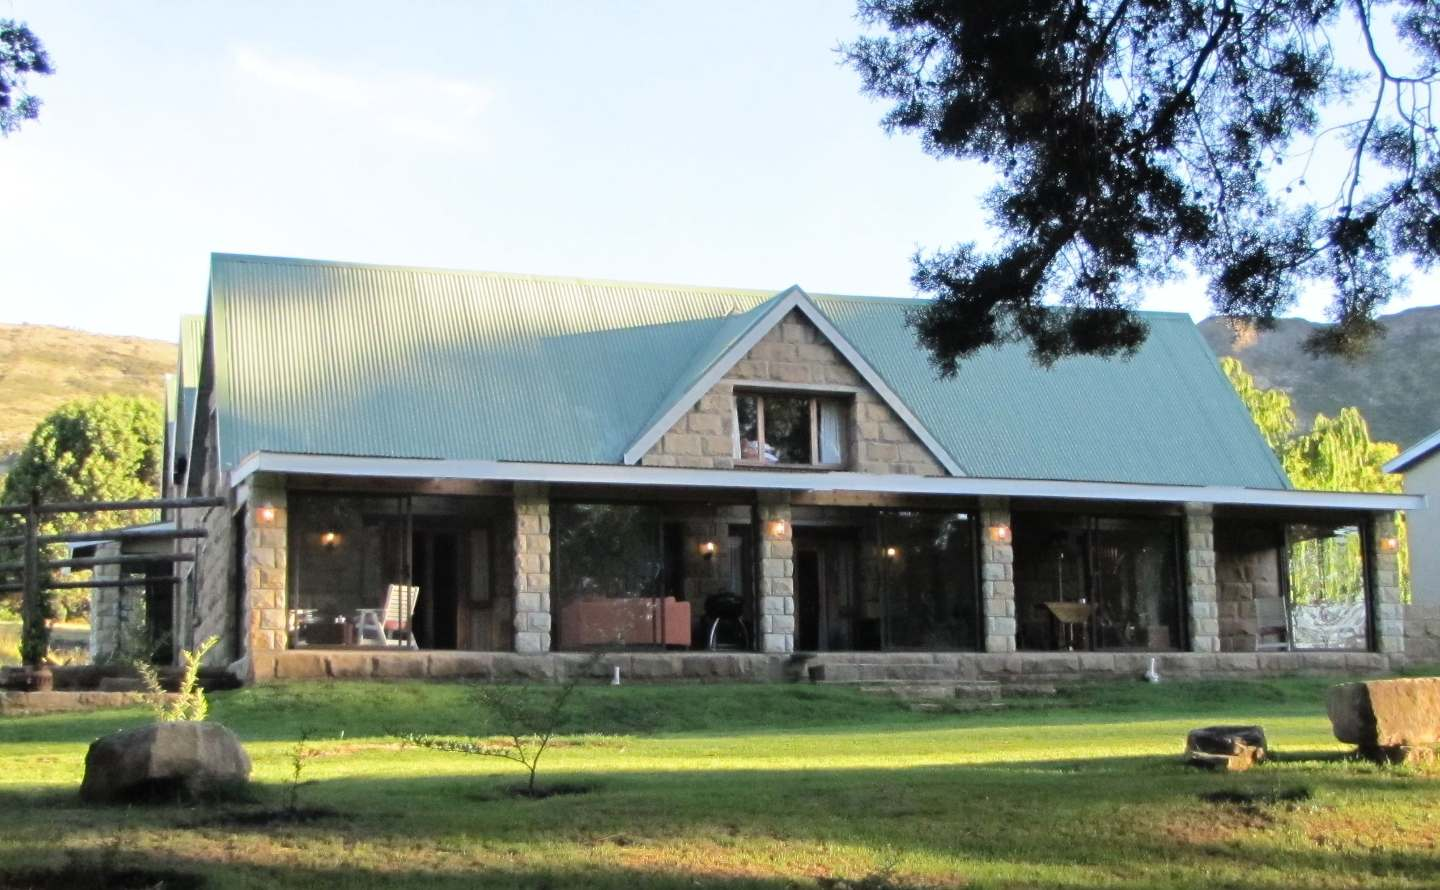 The clarens country house clarens south africa for Country house online